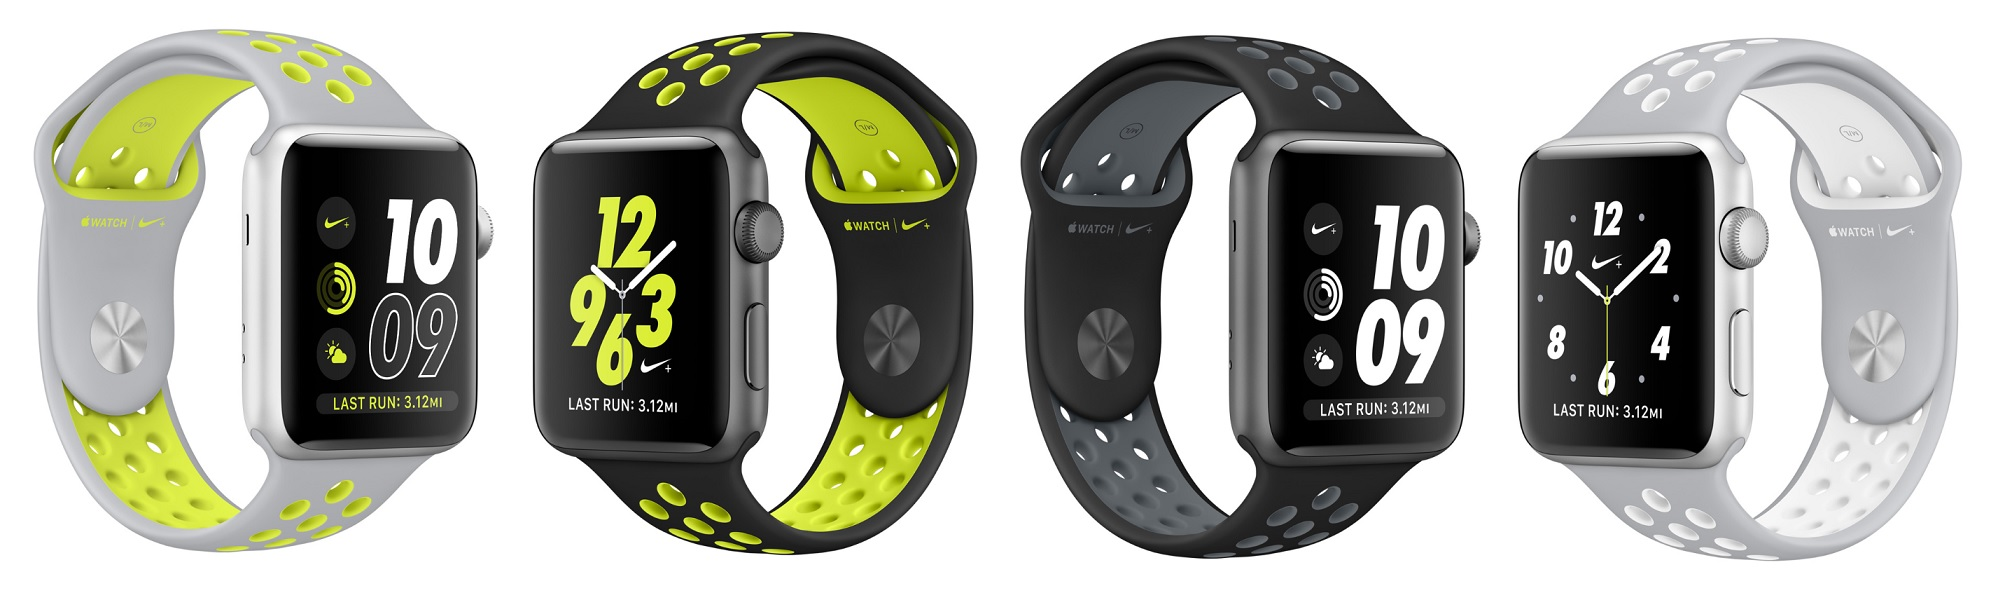 Apple Watch series 2 Nike+ Edition